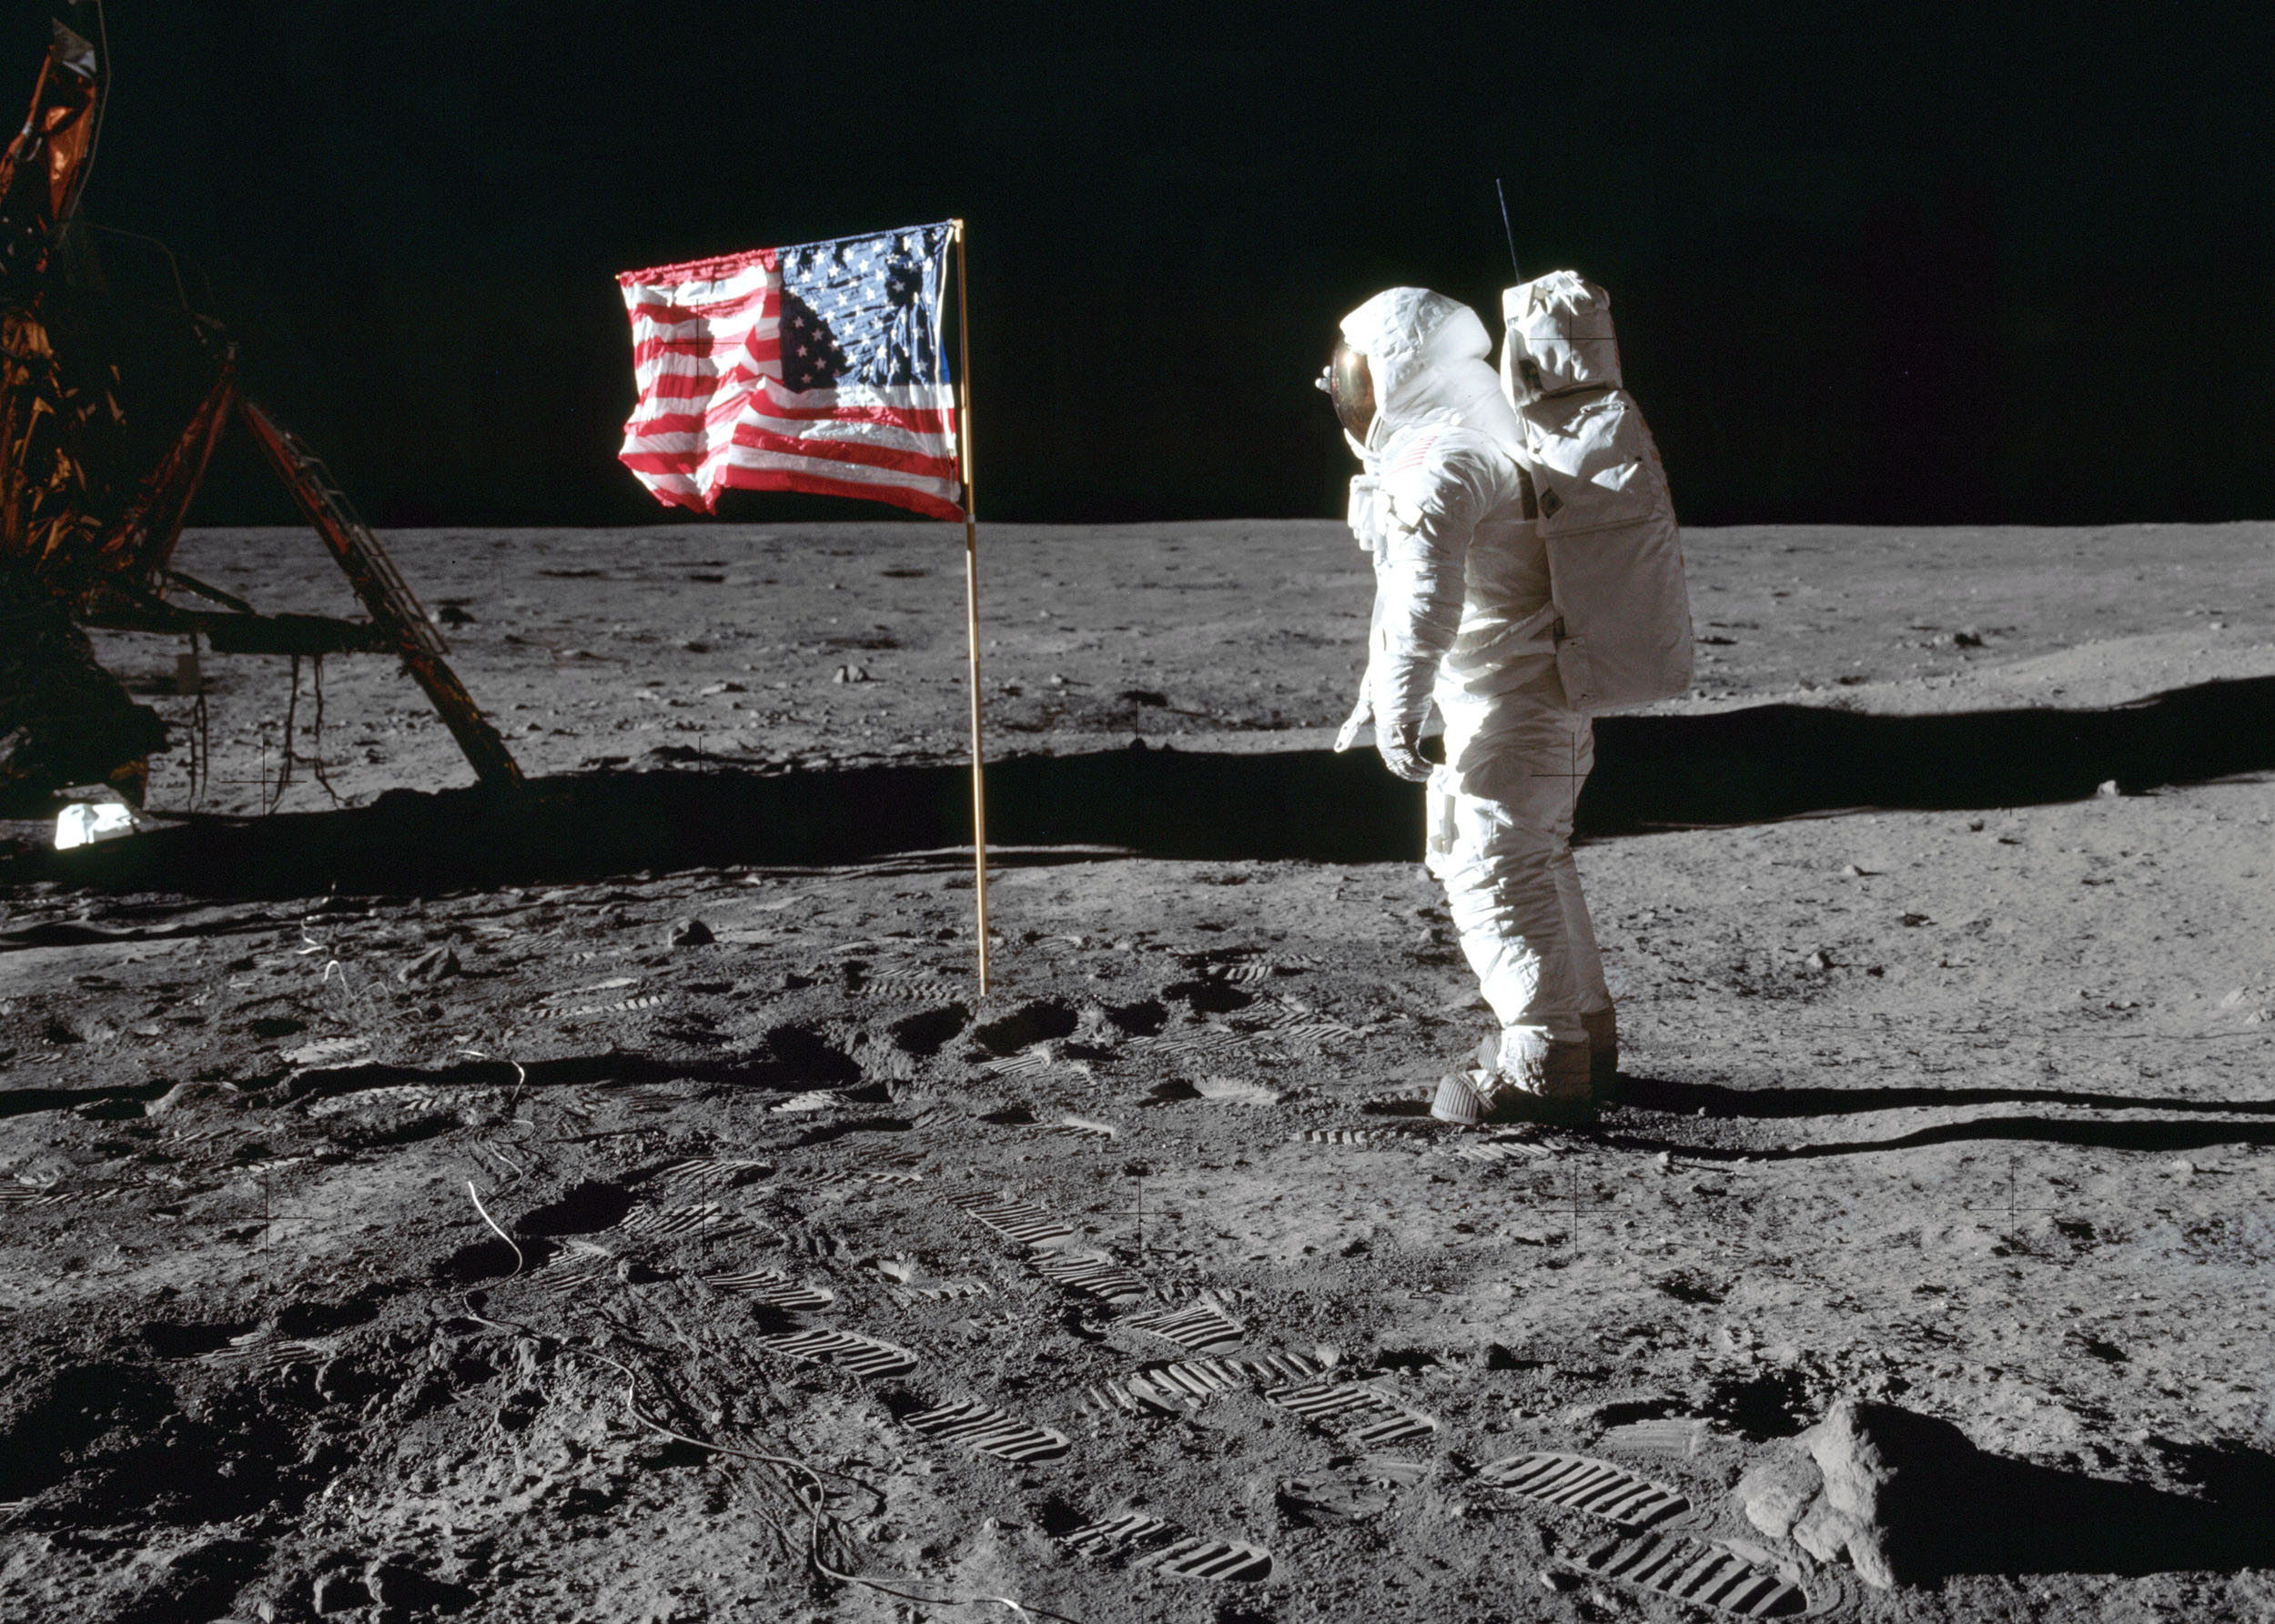 Astronaut Edwin E. Aldrin Jr., lunar module pilot of the first lunar landing mission, poses for a photograph beside the deployed United States flag during an Apollo 11 extravehicular activity (EVA) on the lunar surface, July 20, 1969. (Photo by Neil A. Armstrong via NASA)